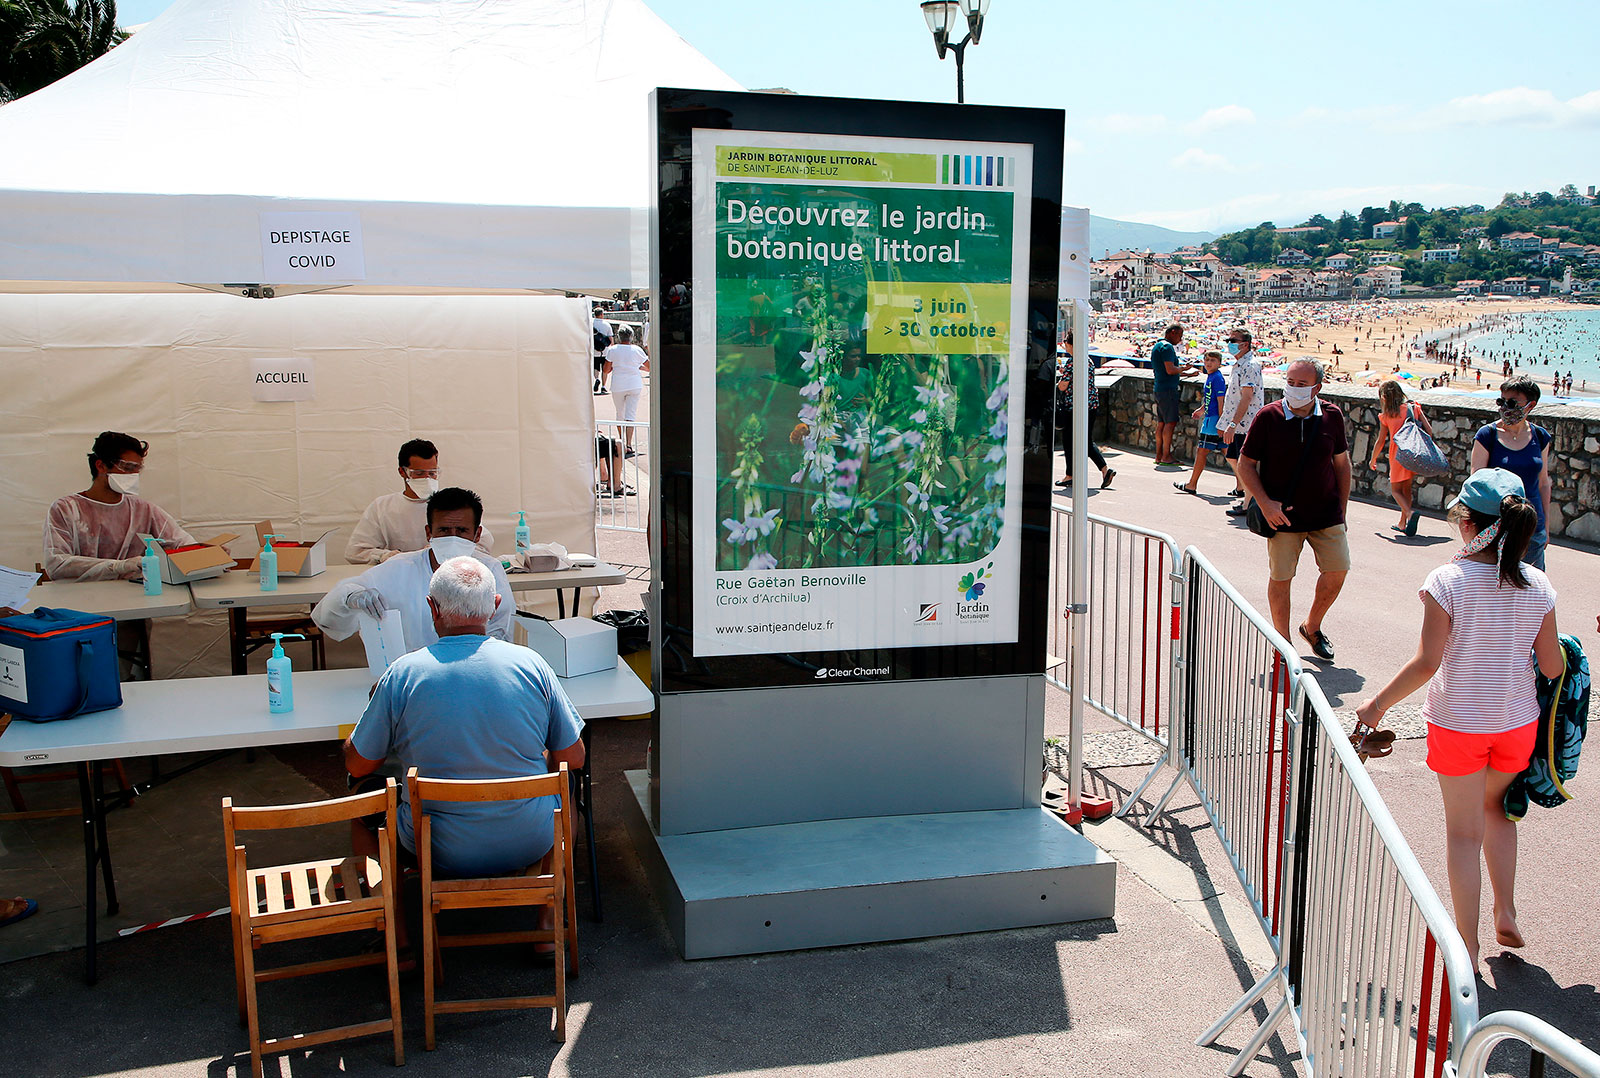 Healthcare workers prepare to administer coronavirus tests to people in Saint-Jean-de-Luz, France, on Monday, July 27.